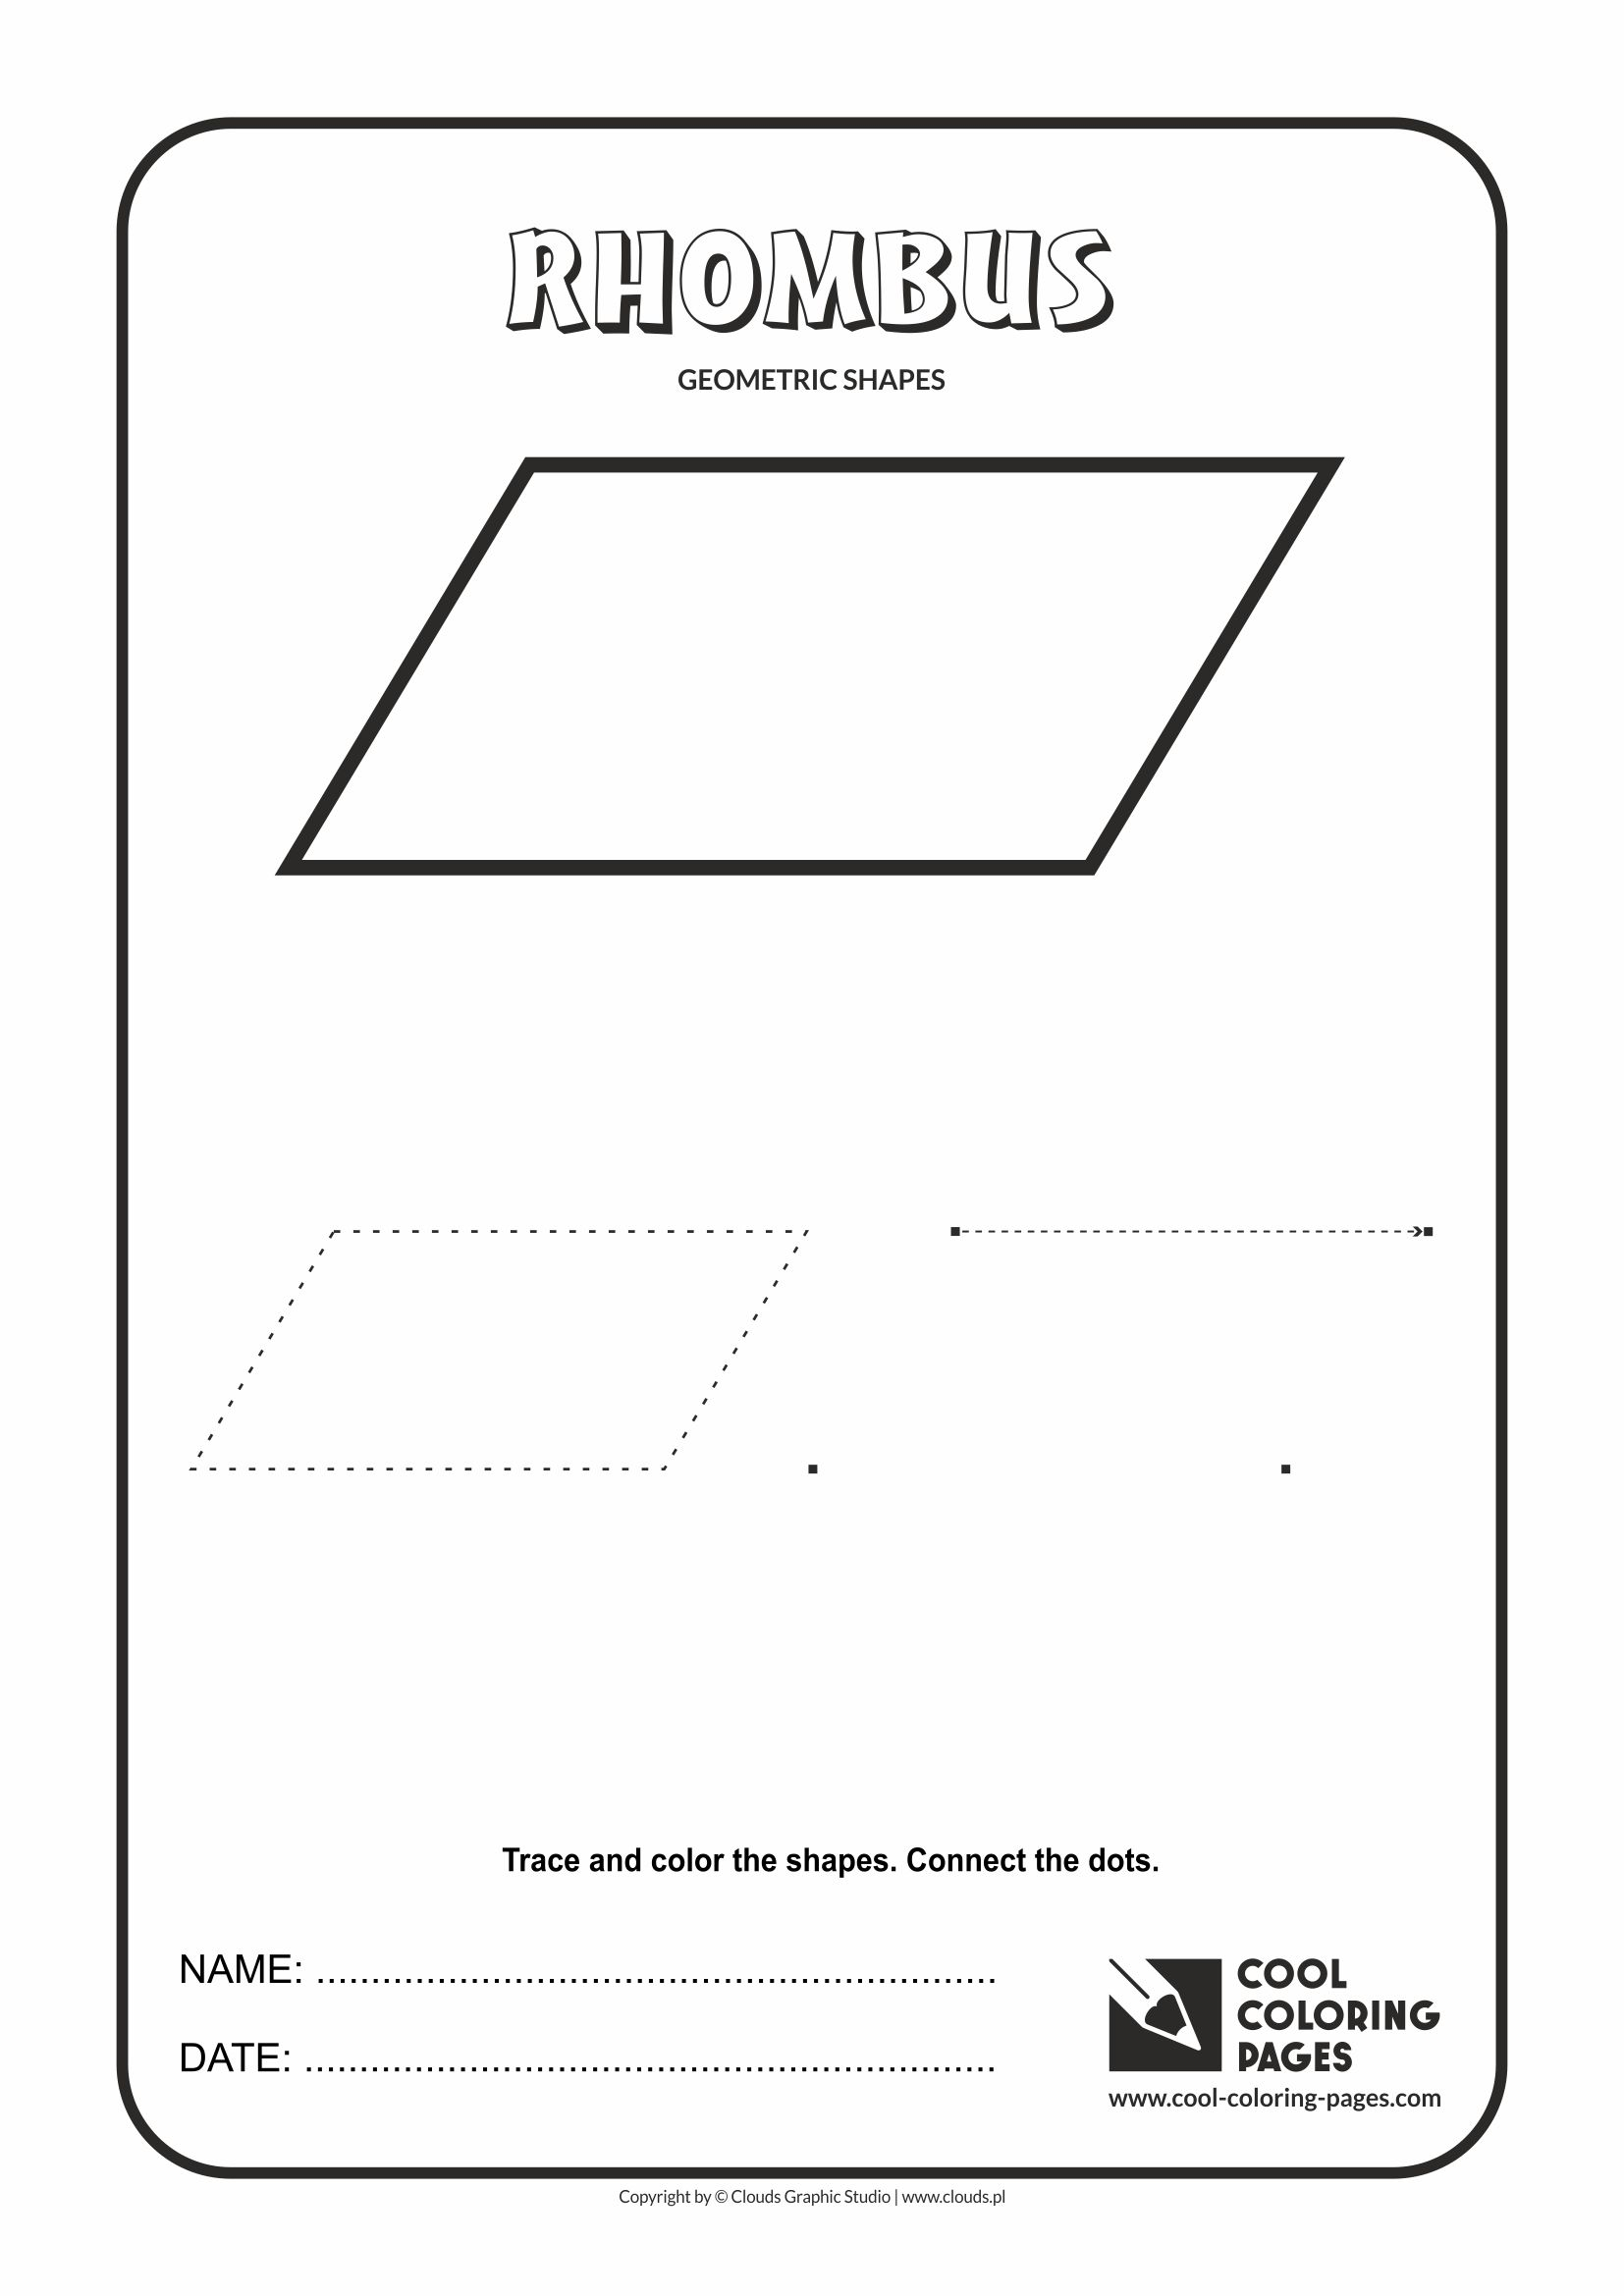 Cool Coloring Pages - Geometric shapes / Rhombus